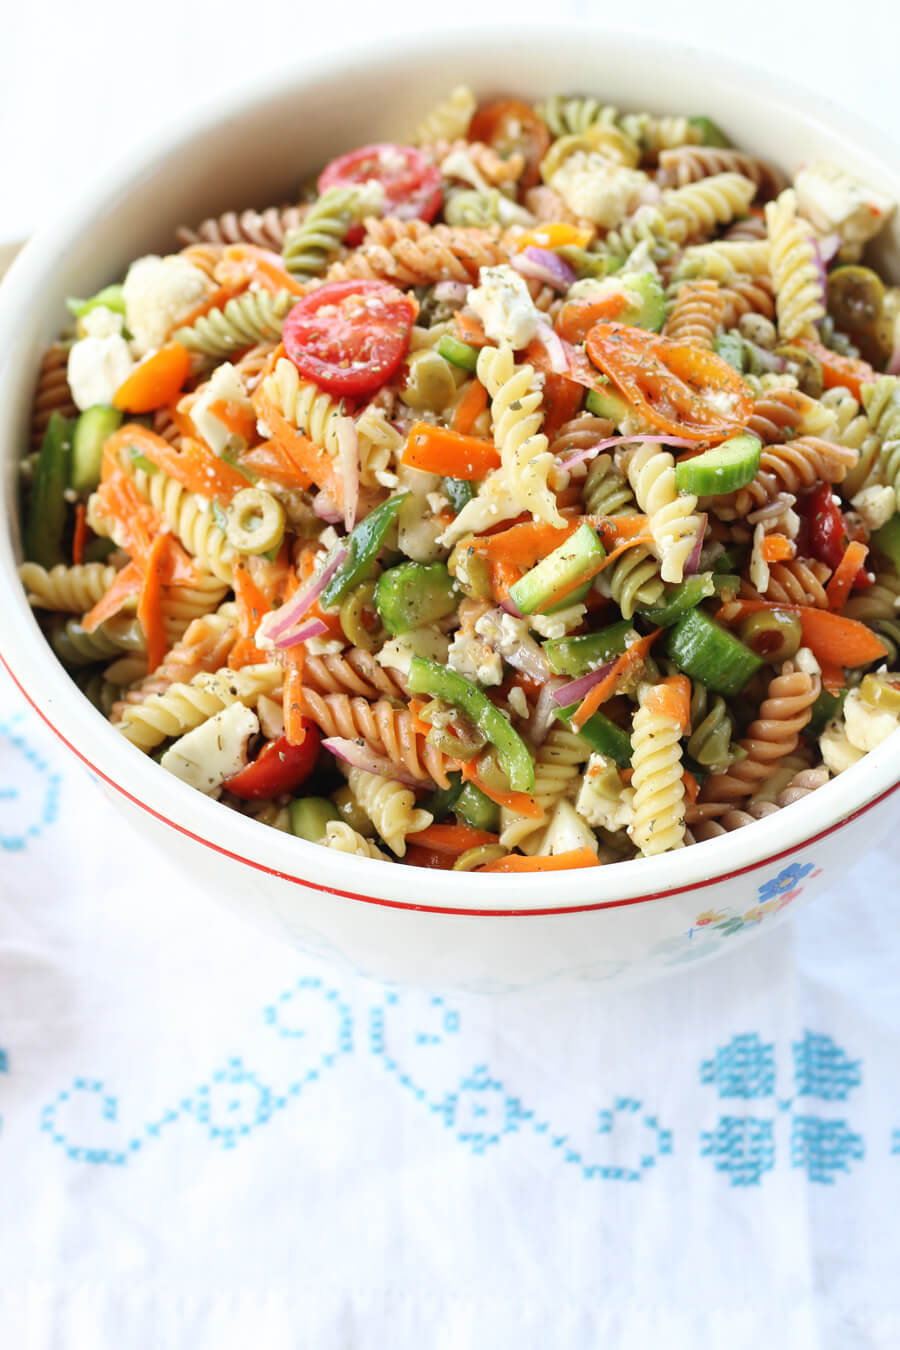 Zesty Italian Pasta Salad | Buy This Cook ThatGet our delicious go-to recipe for Italian Pasta Salad. With colorful, healthy vegetables, a tangy dressing, and tri-color pasta, this side dish always pleases.Easy to make ahead, too.#Italianpastasalad #pastasalad